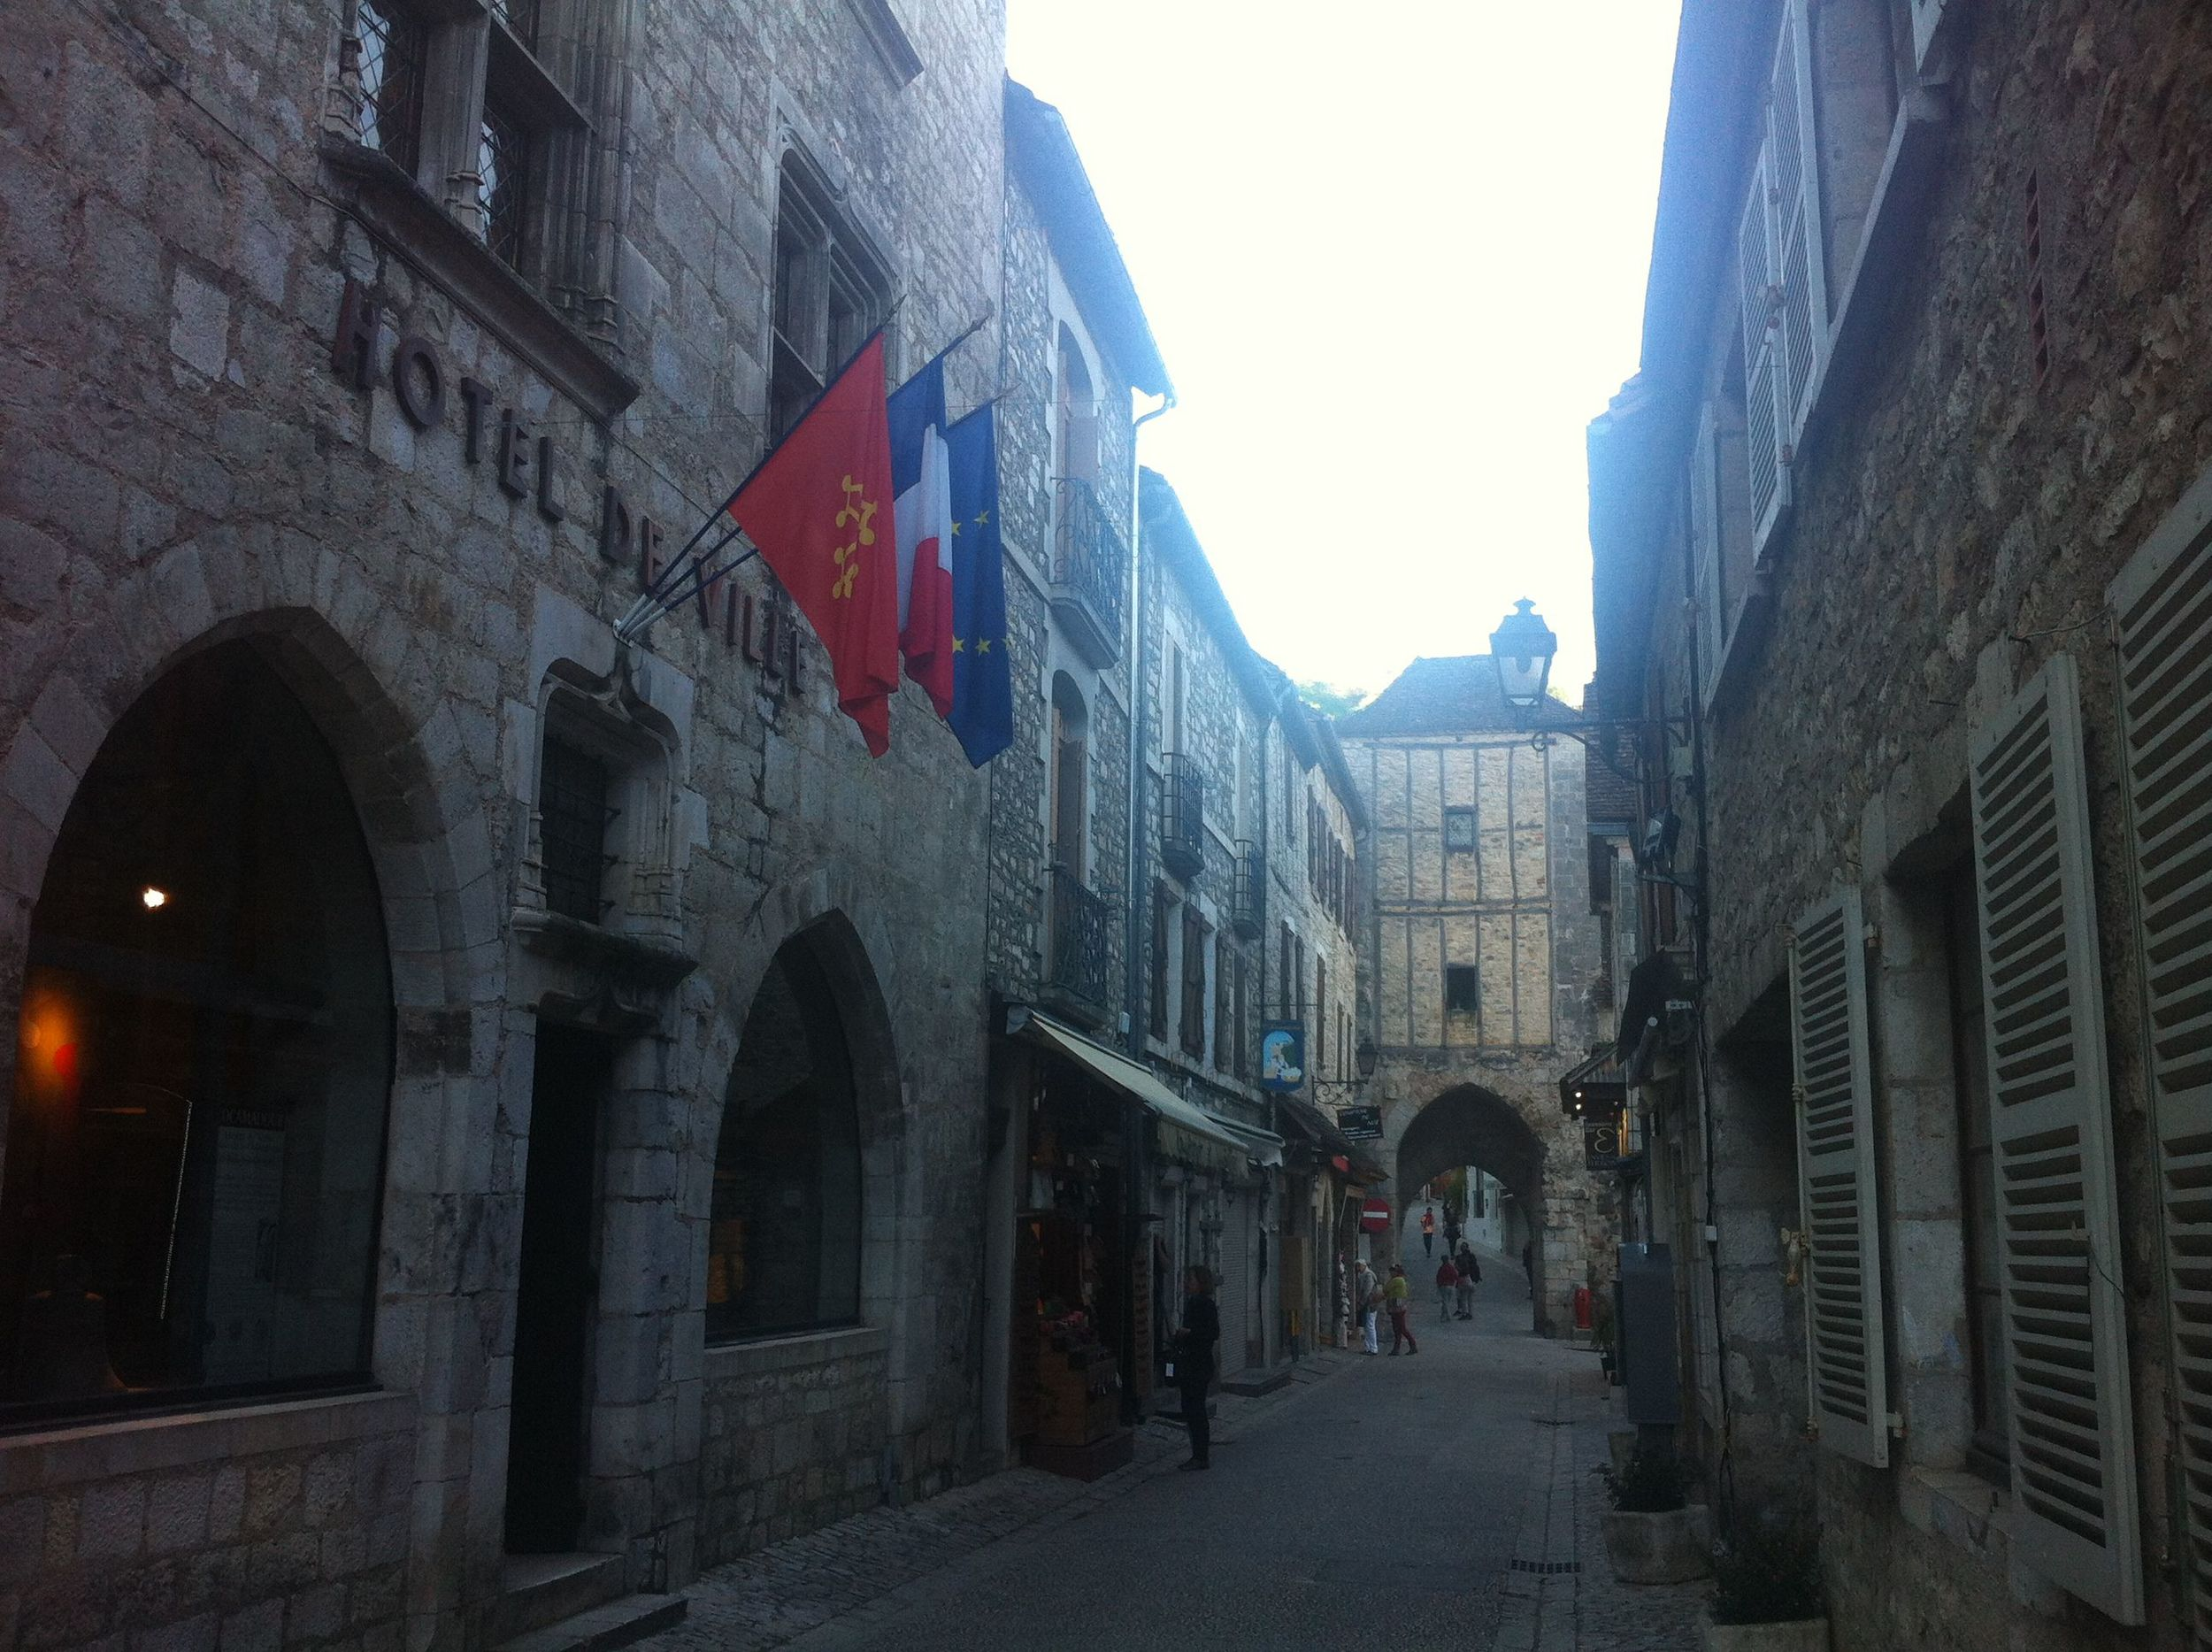 Medieval streets of Rocamadour, France.